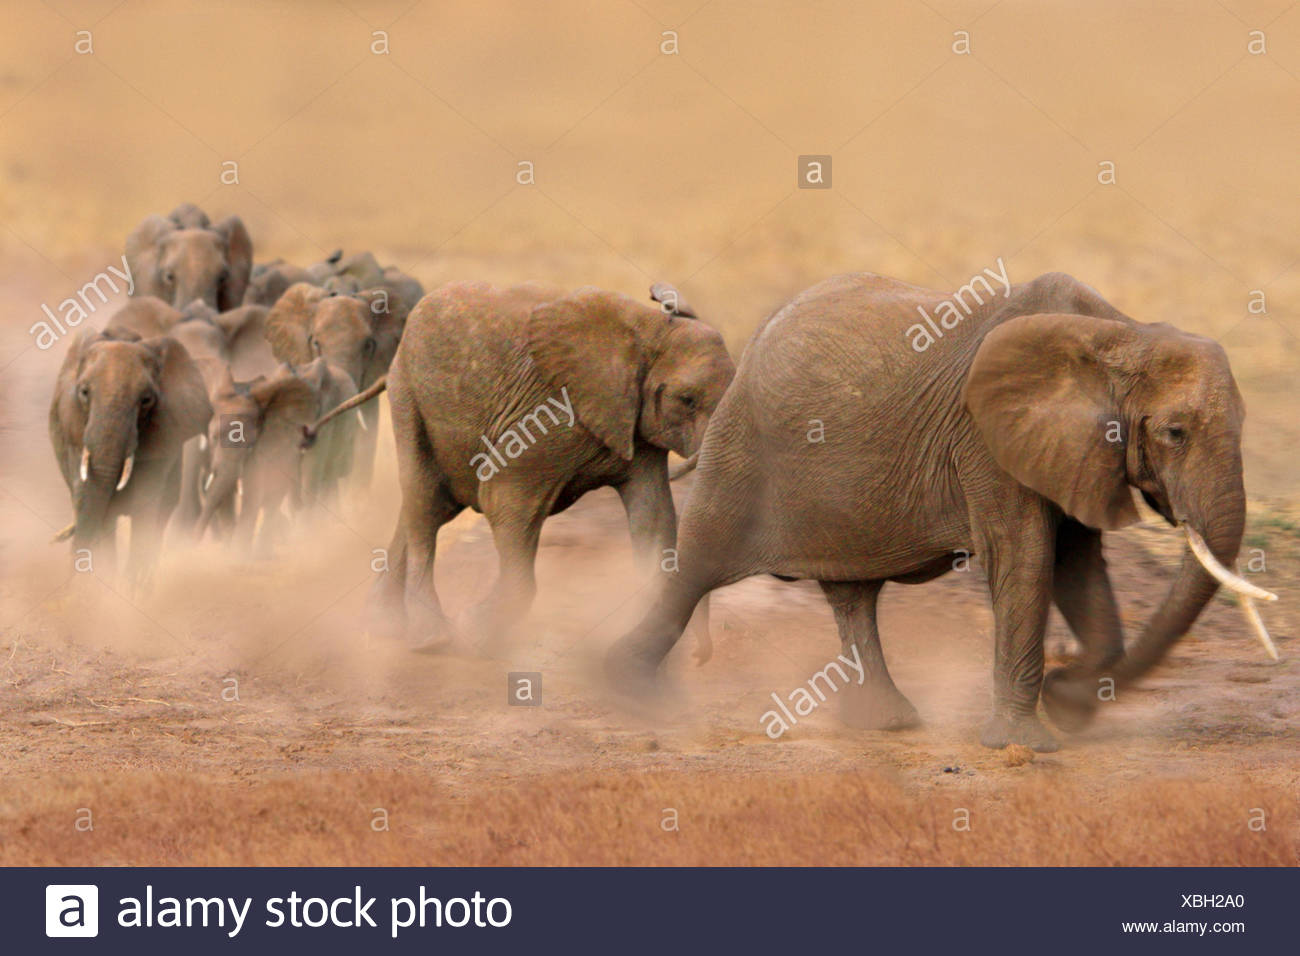 African elephant (Loxodonta africana), group walking quickly through the steppe and blowing up dust, Kenya, Amboseli National Park - Stock Image